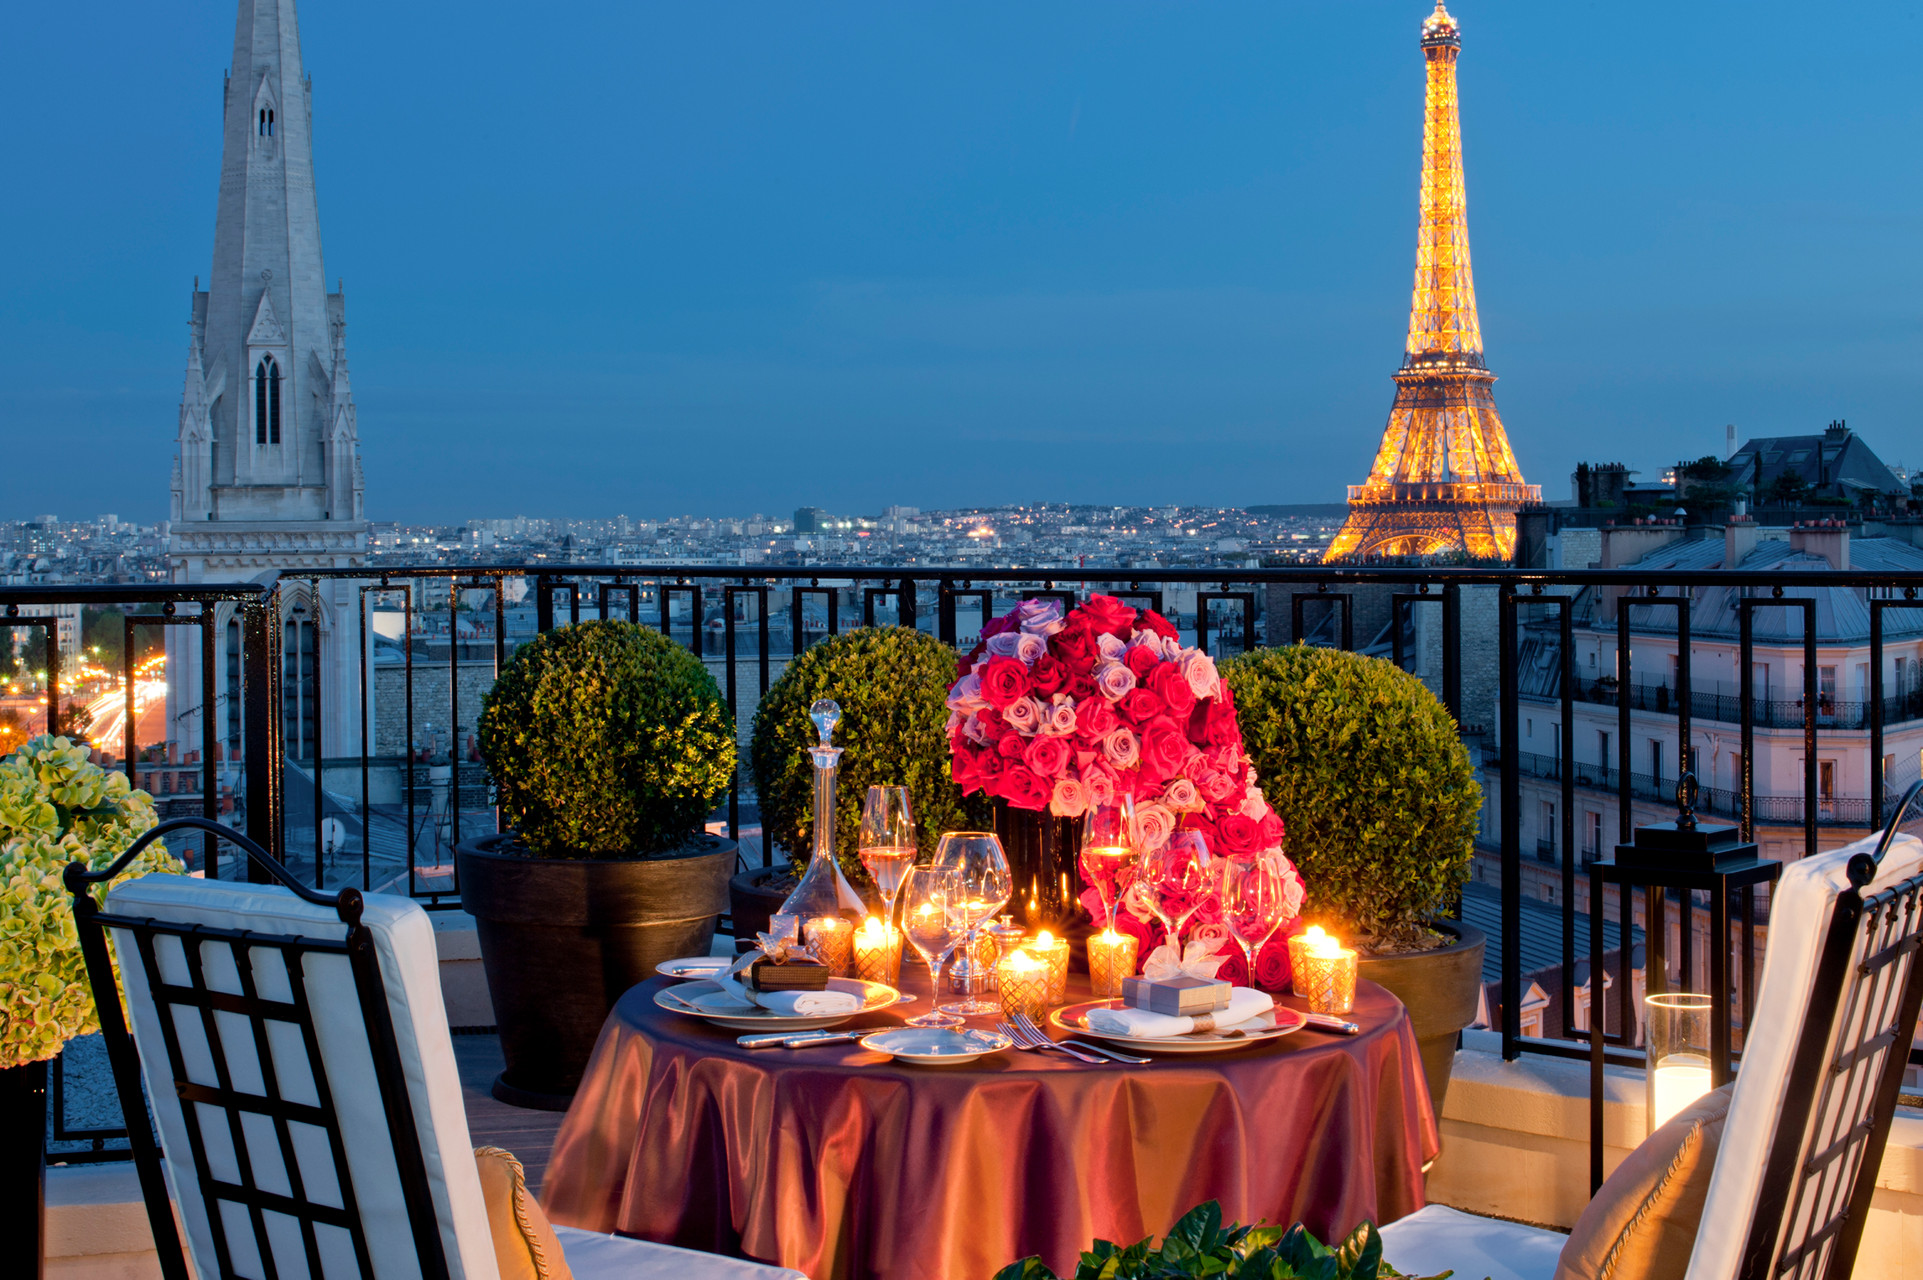 Luxury Travel: 5 Reasons Why Paris Should Be Your Next Destination